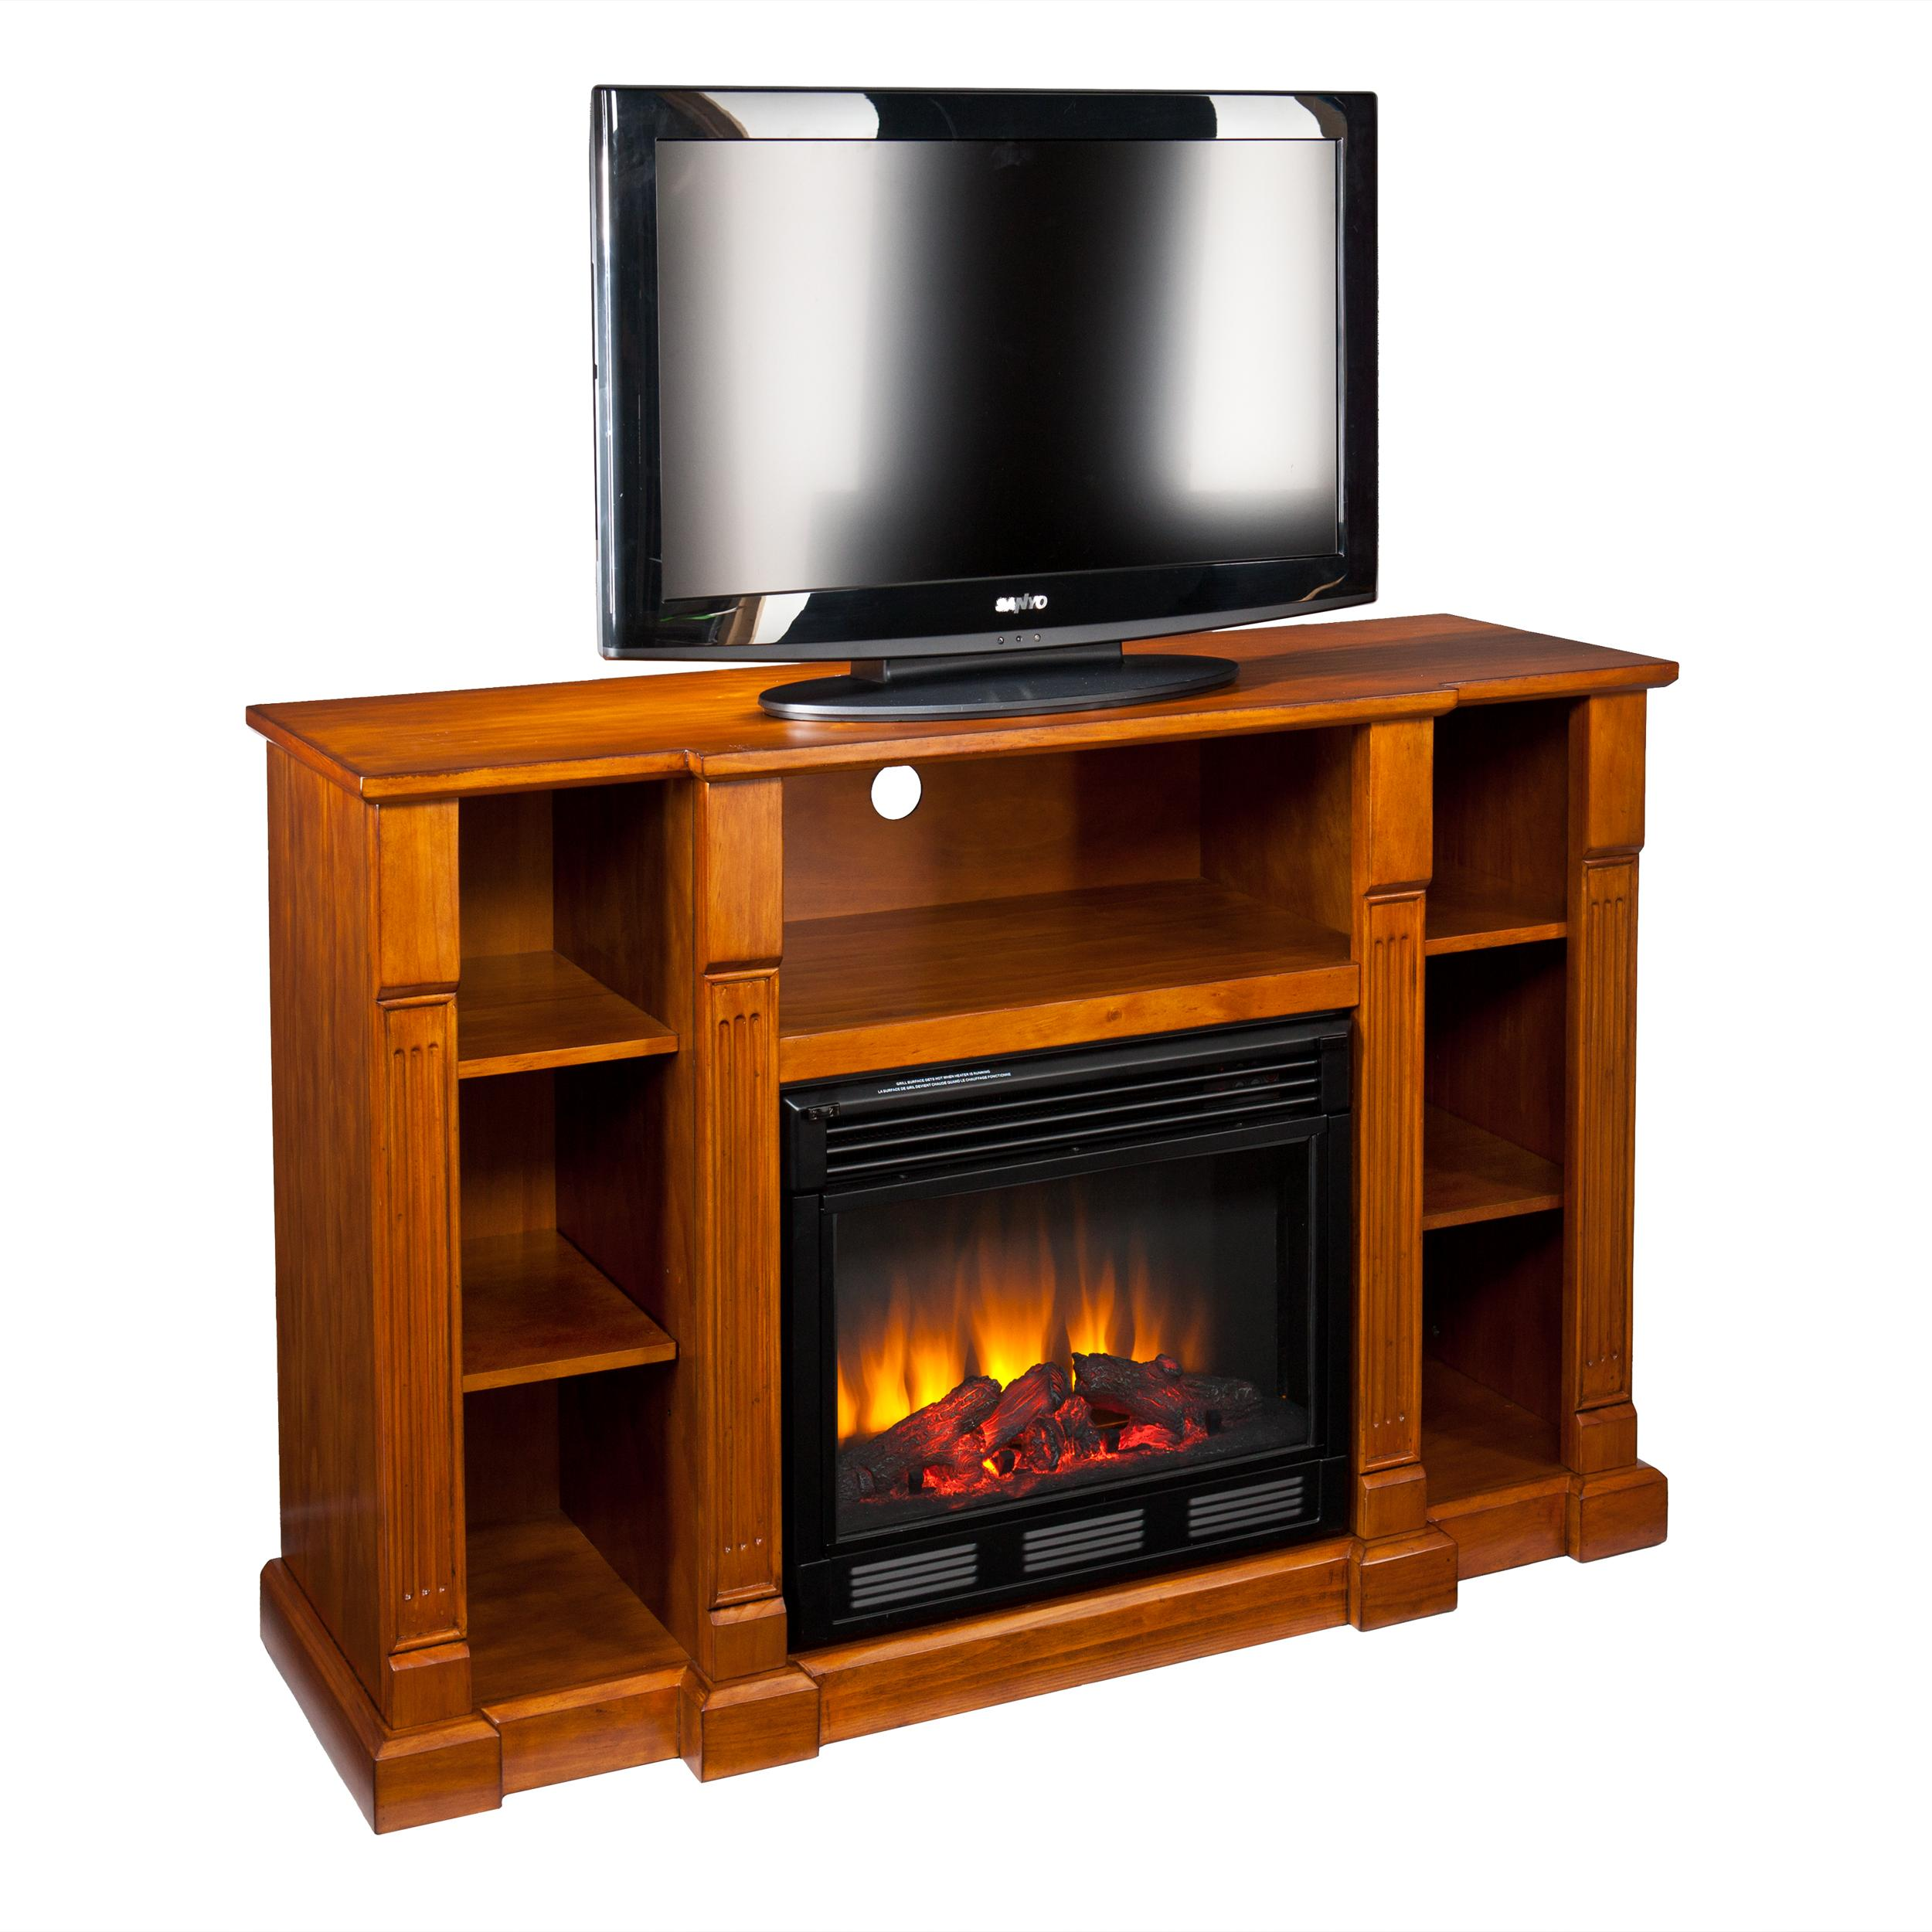 kendall electric media fireplace glazed pine. Black Bedroom Furniture Sets. Home Design Ideas